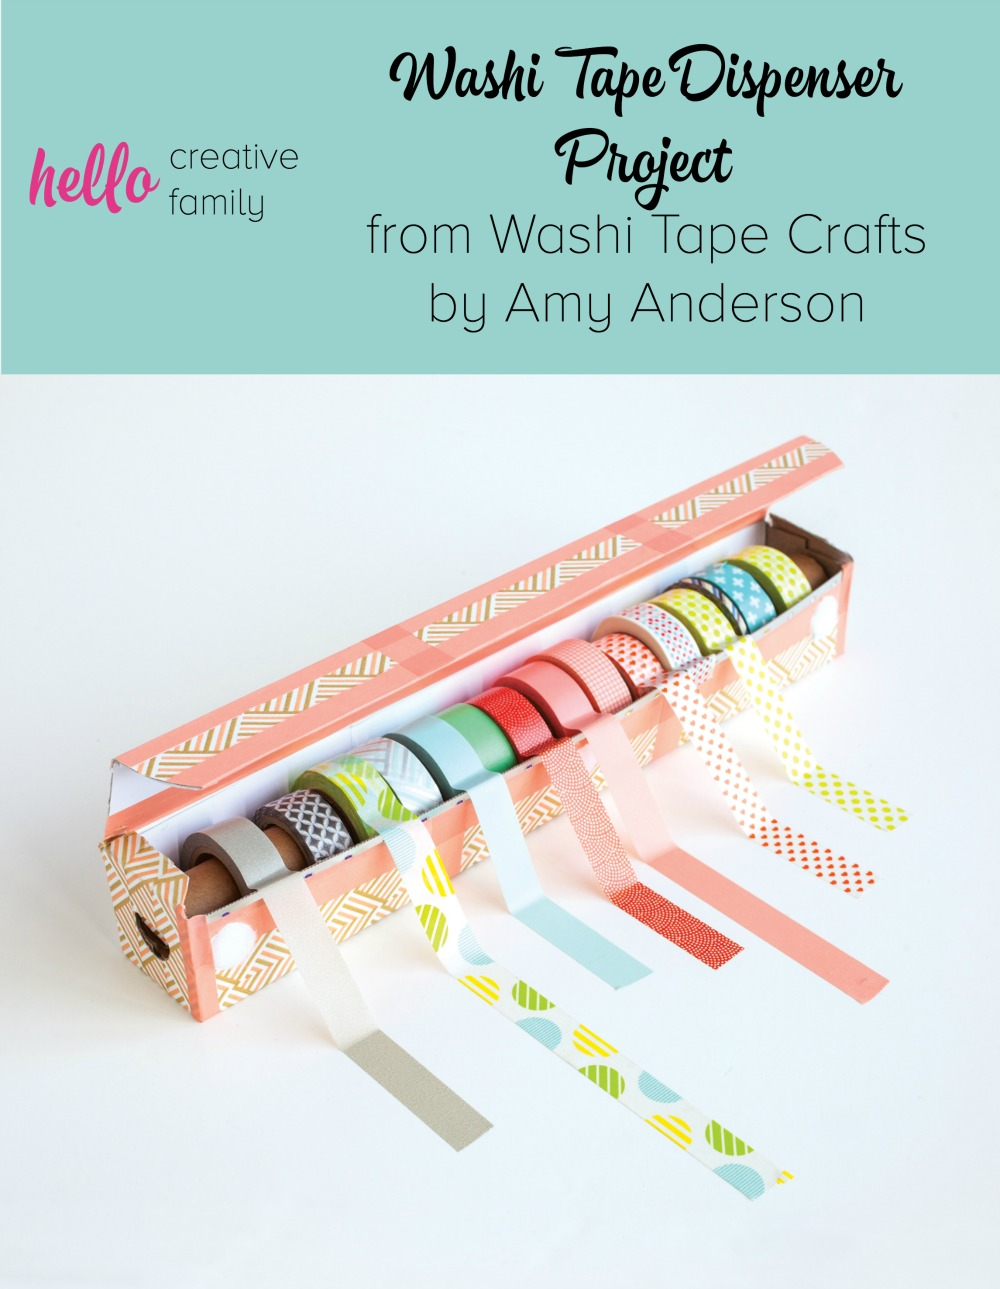 Keep your washi tape organized and prettily displayed with easy DIY Washi Tape Dispenser Project from Washi Tape Crafts by Amy Anderson.